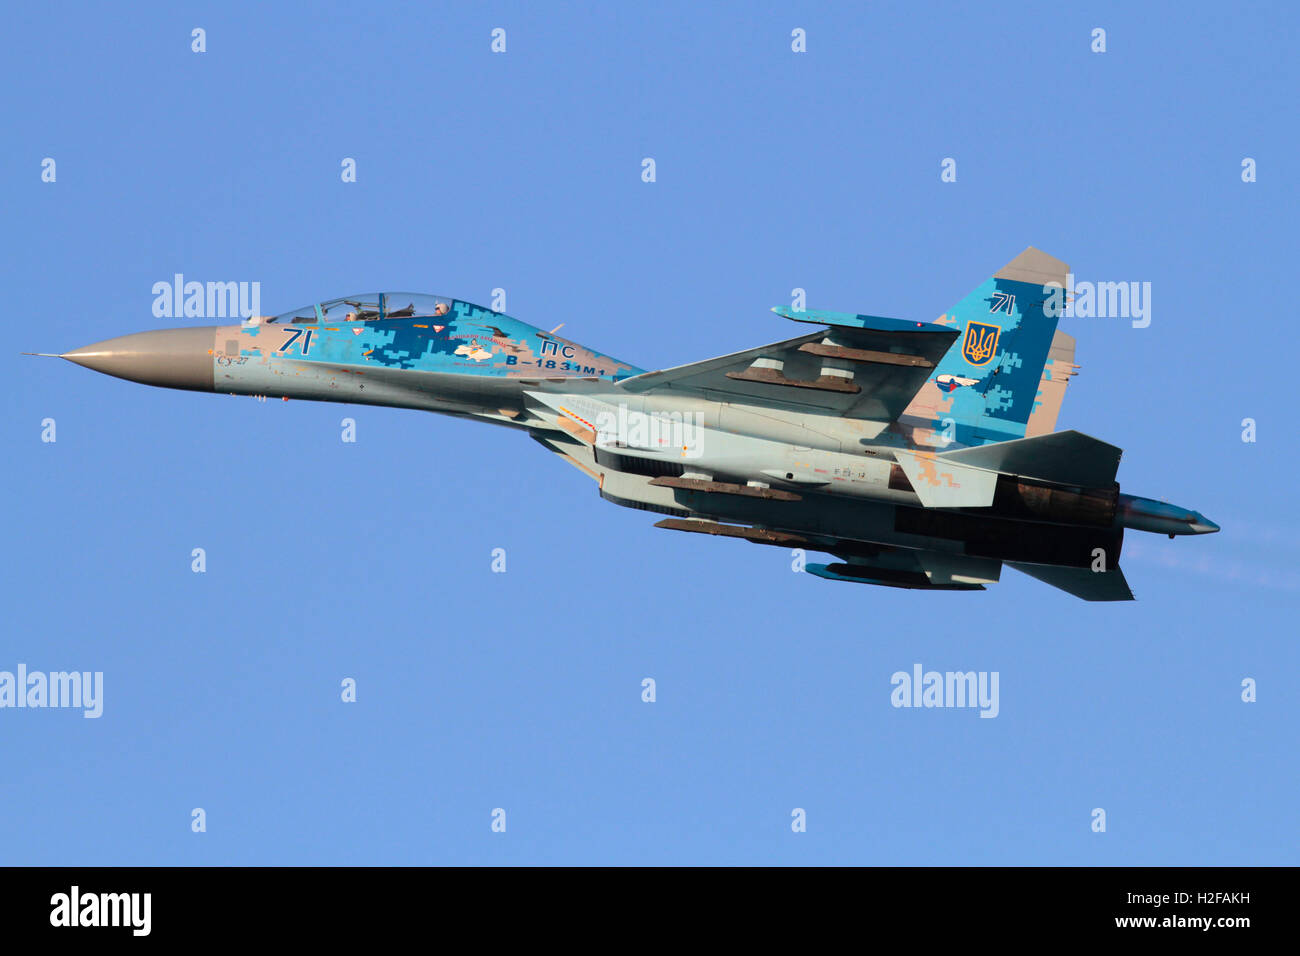 Military aviation. Sukhoi Su-27UB Flanker jet fighter airplane of the Ukraine Air Force flying in the sky - Stock Image